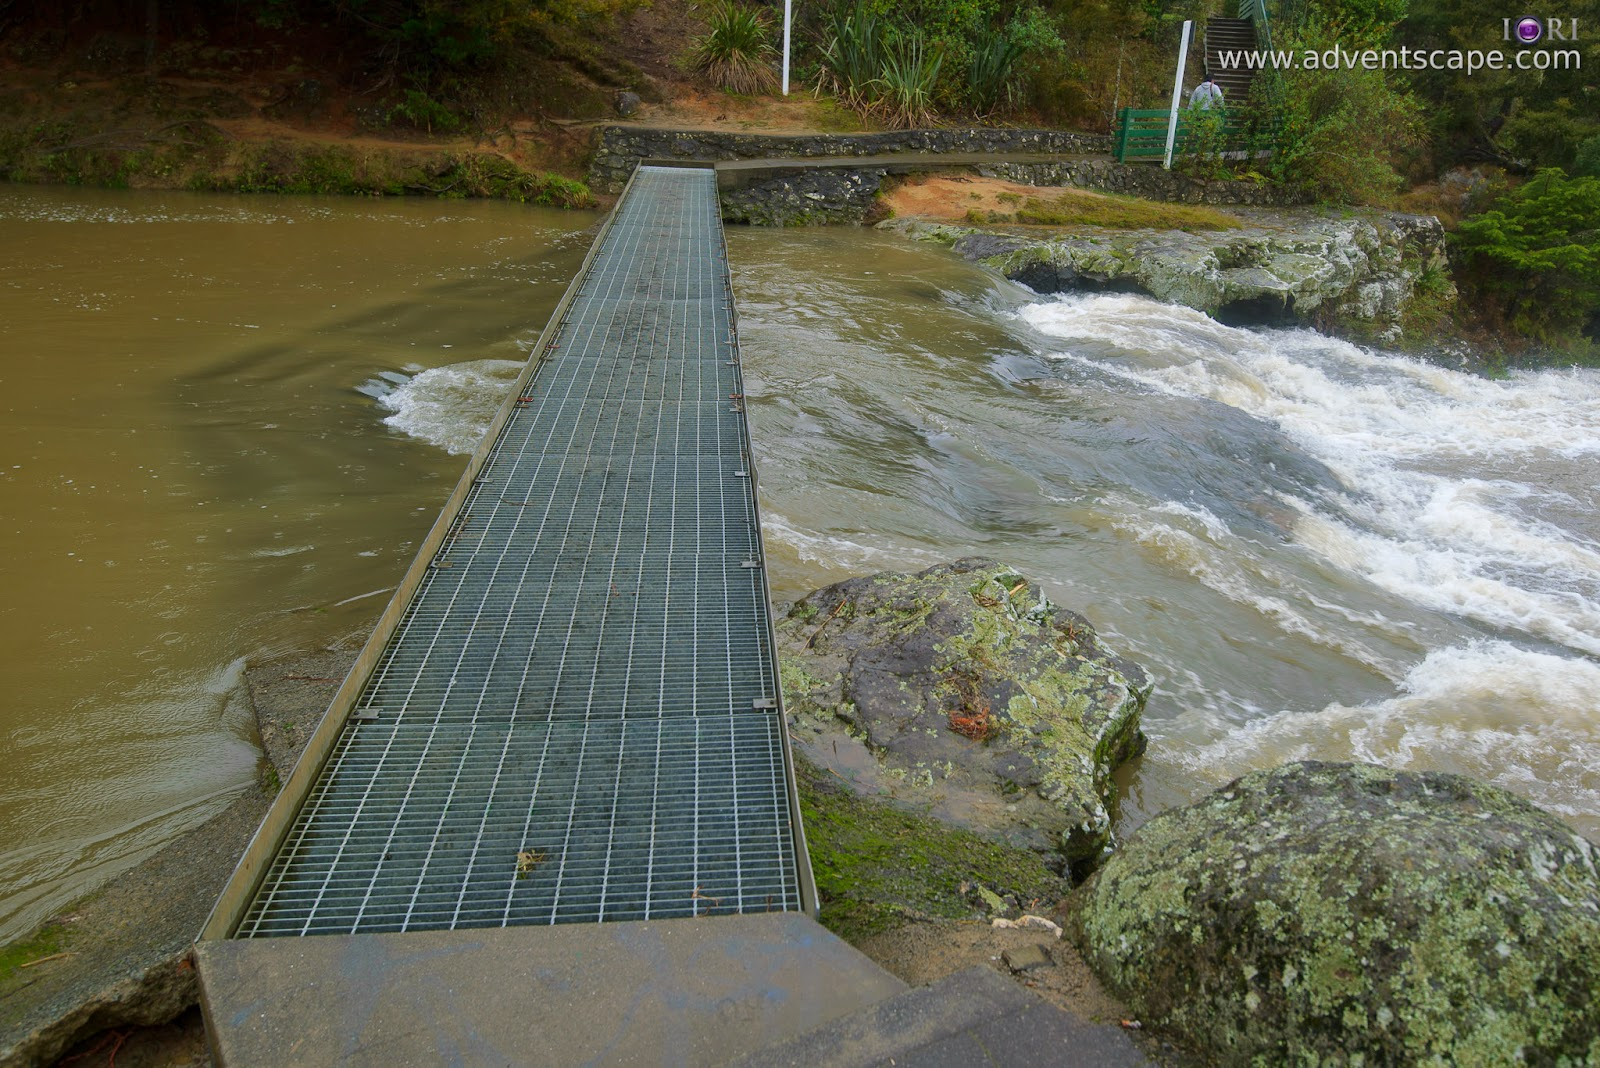 Philip Avellana, adventscape, iori, Whangarei falls, waterfalls, North Island, New Zealand, travel, tour, places to visit, landscape, nature photos, metal bridge, safety rails